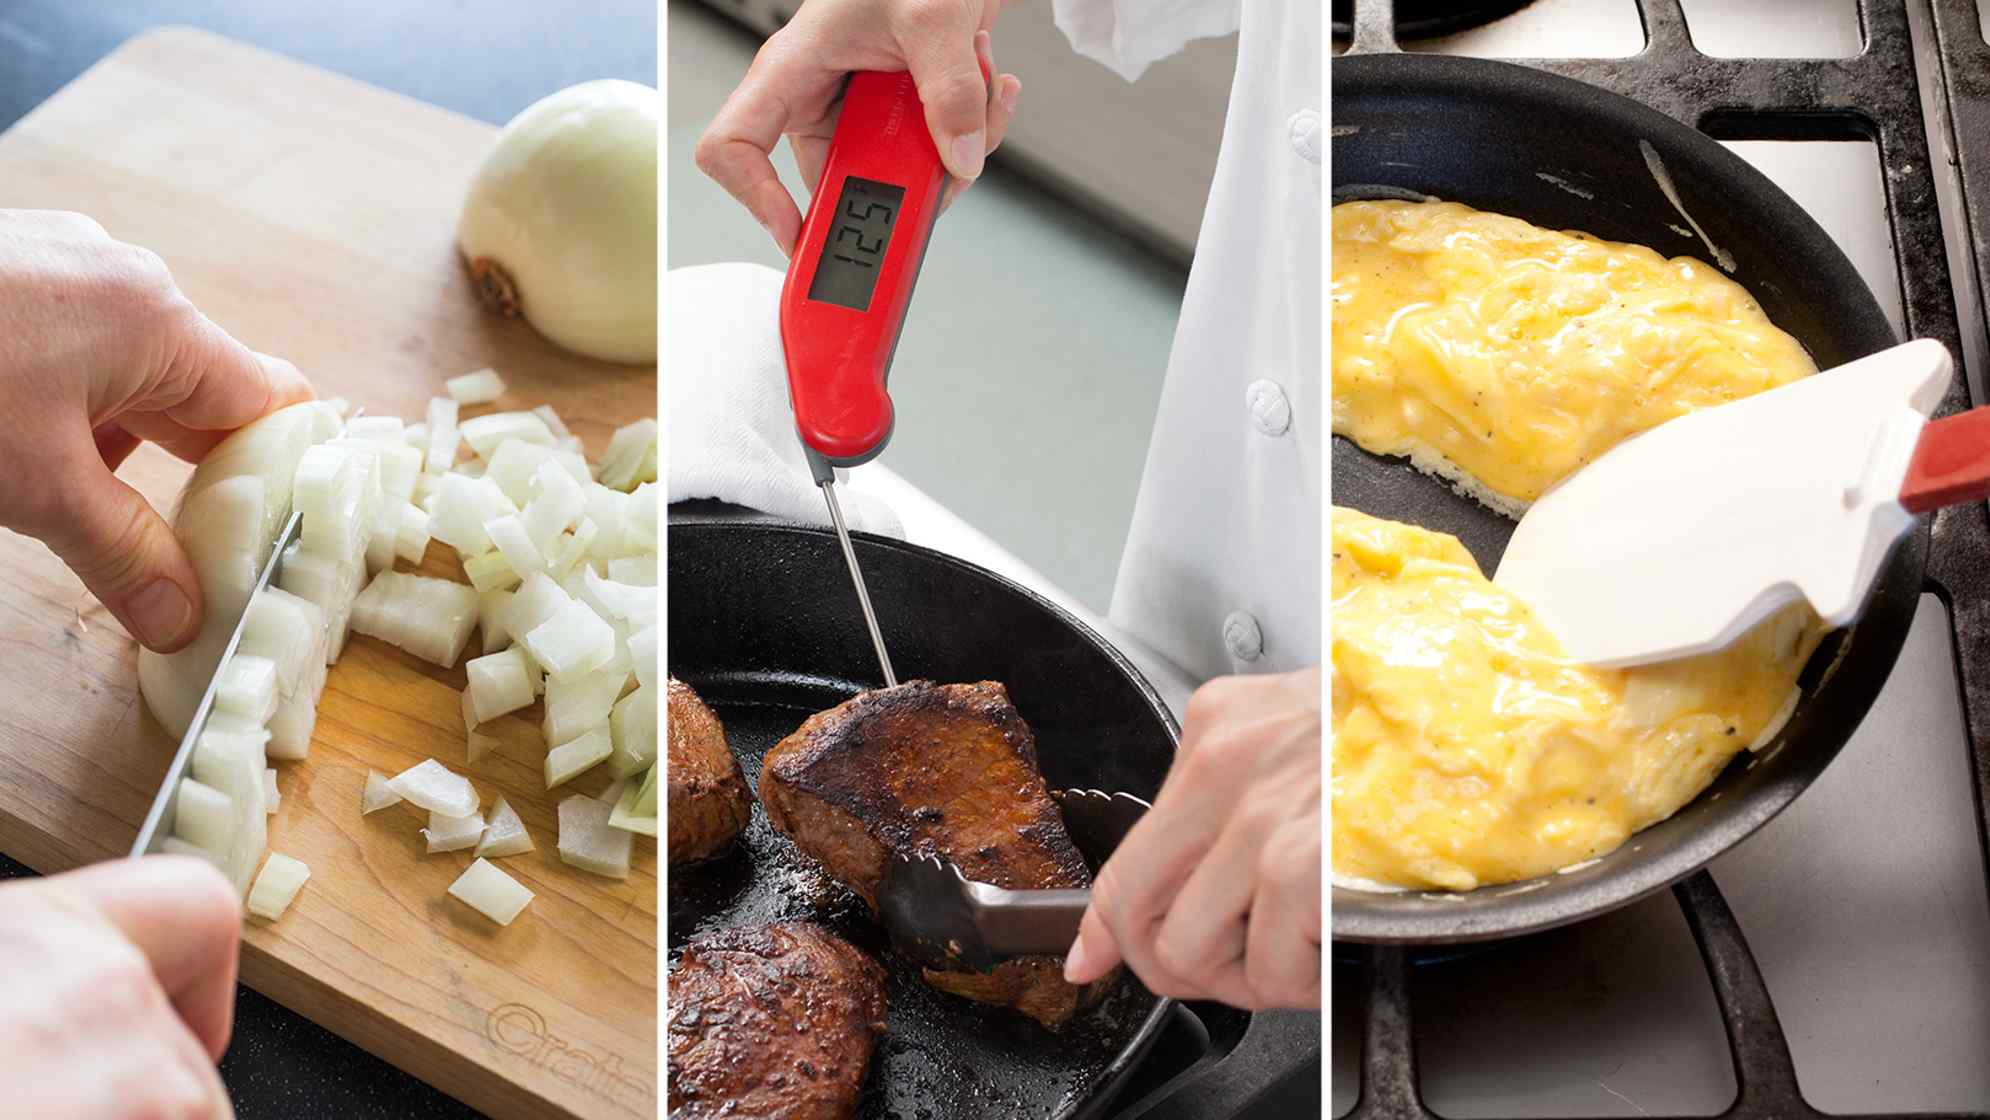 11 Cooking Skills Every College Grad Should Master